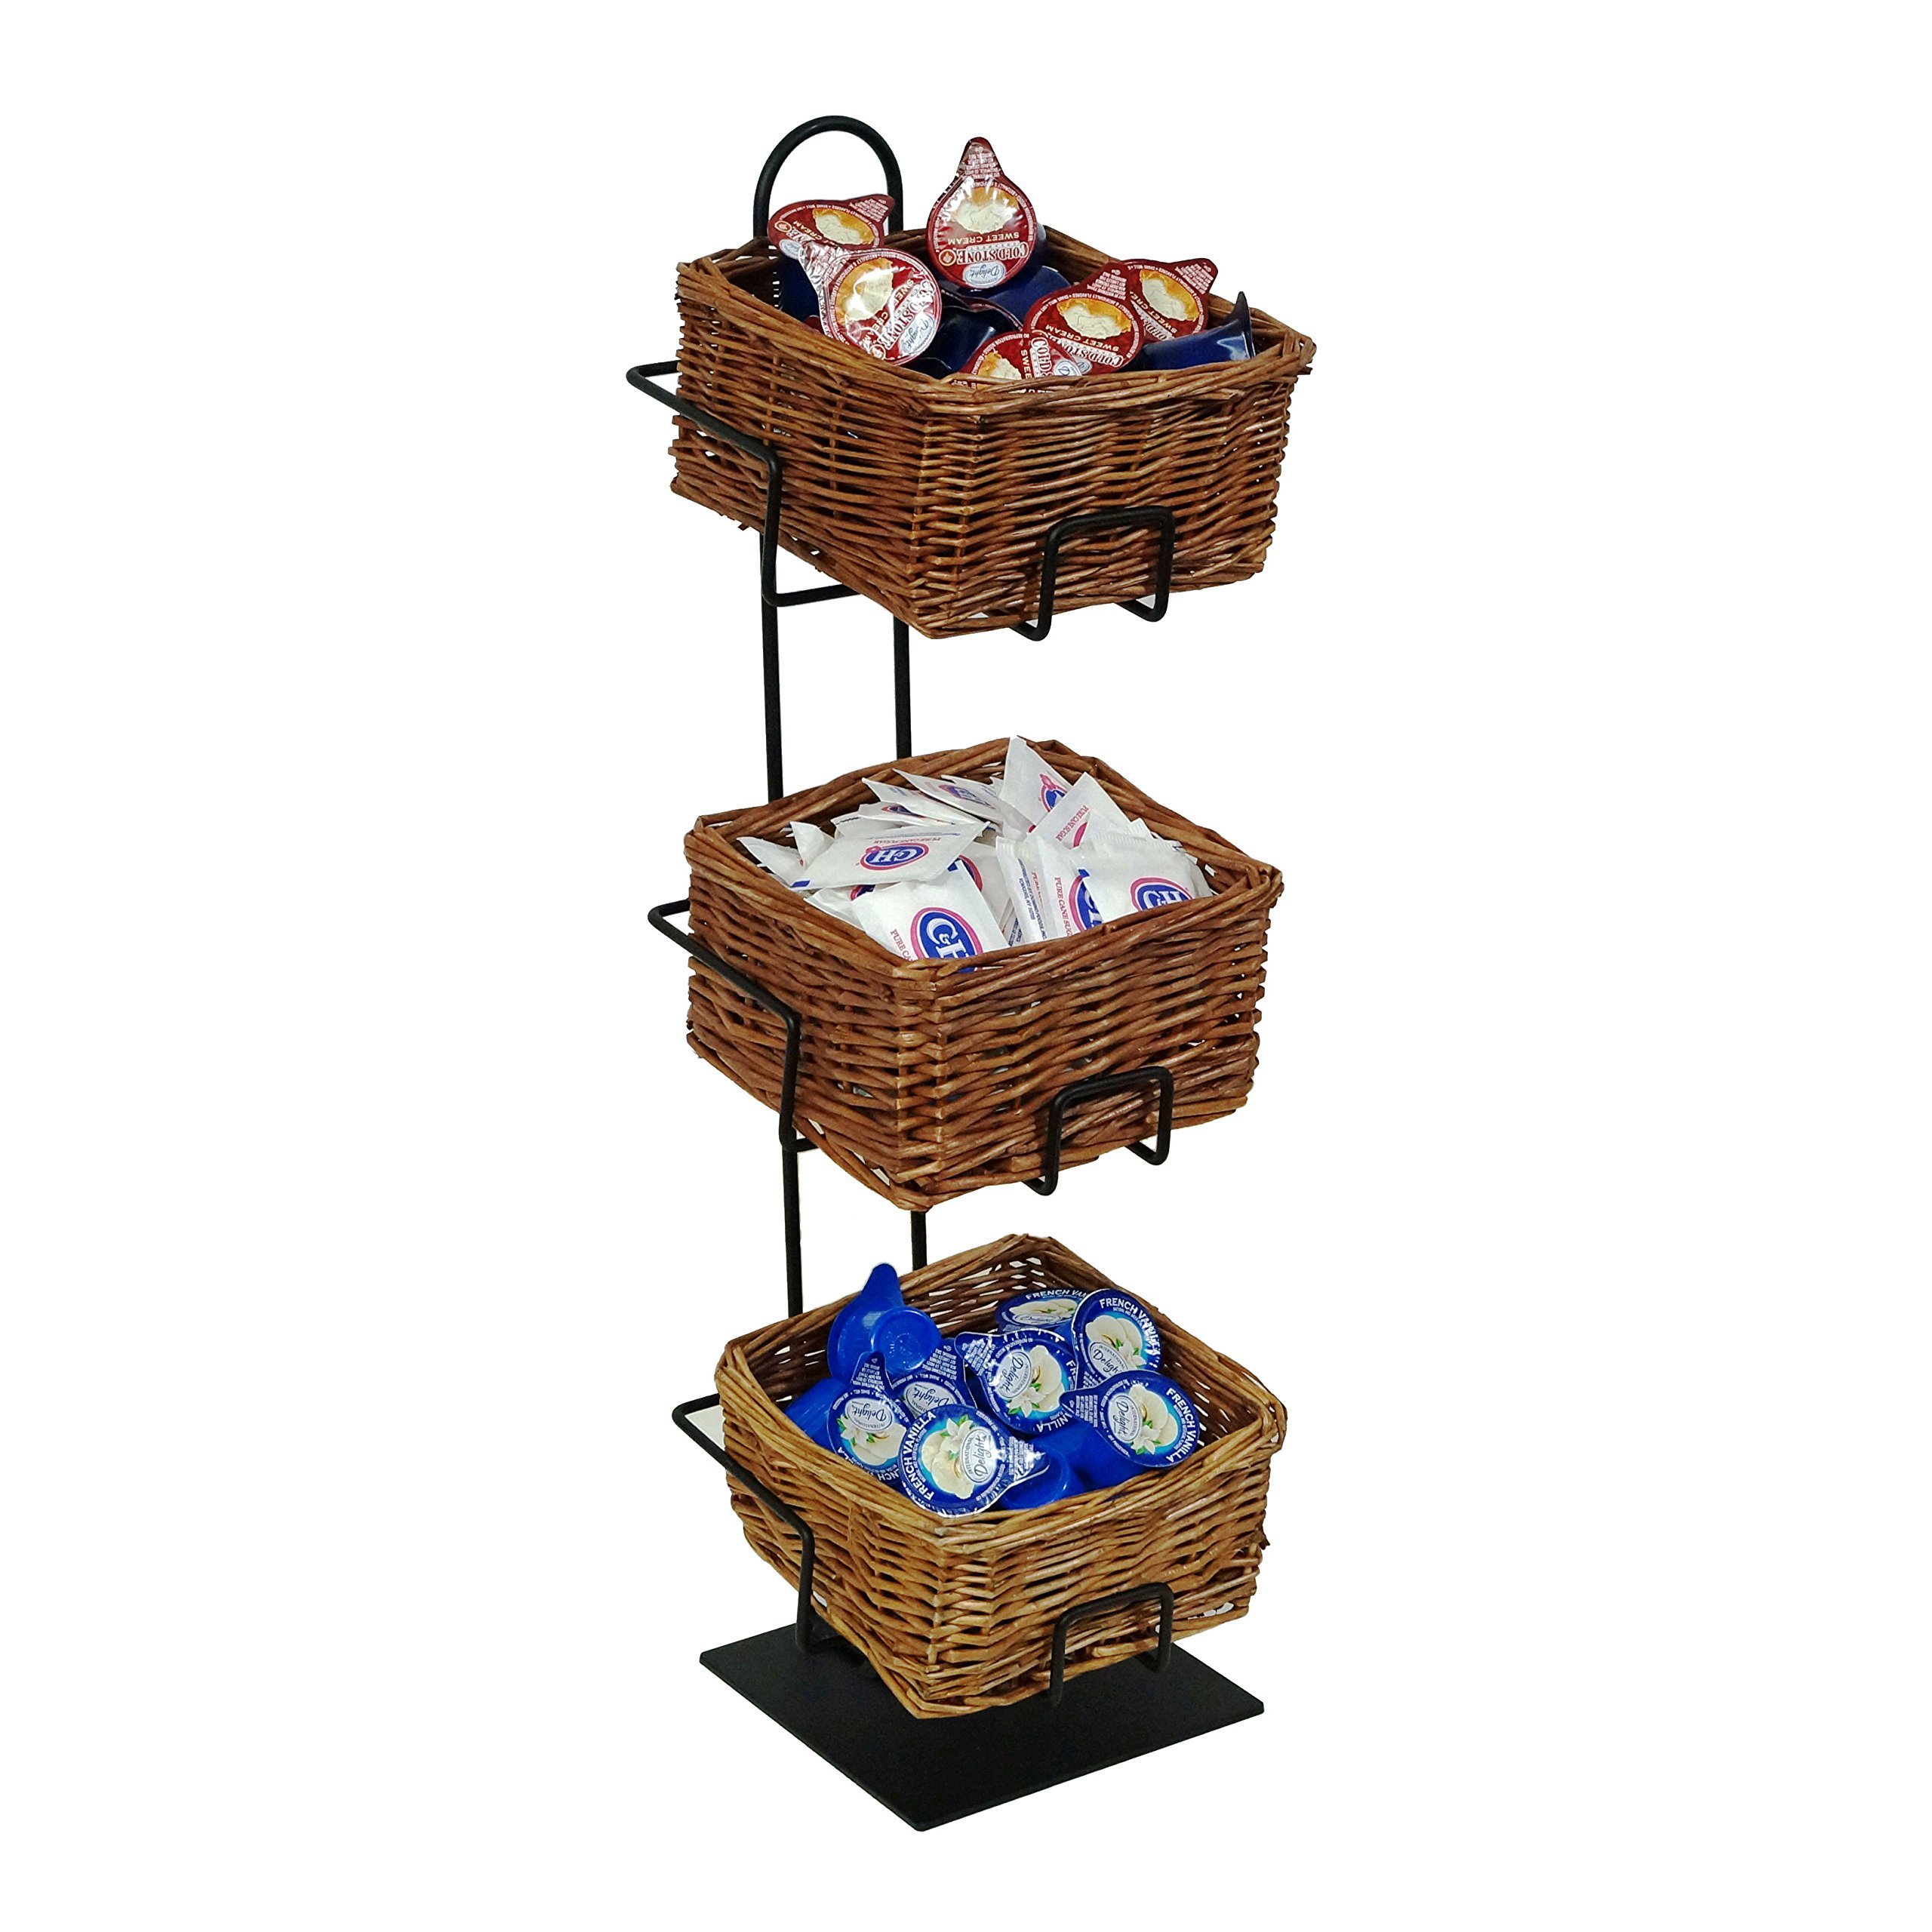 3-Tier 3 Rectangular Willow Basket Counter Display Rack by Mobile Merchandisers (Image #1)